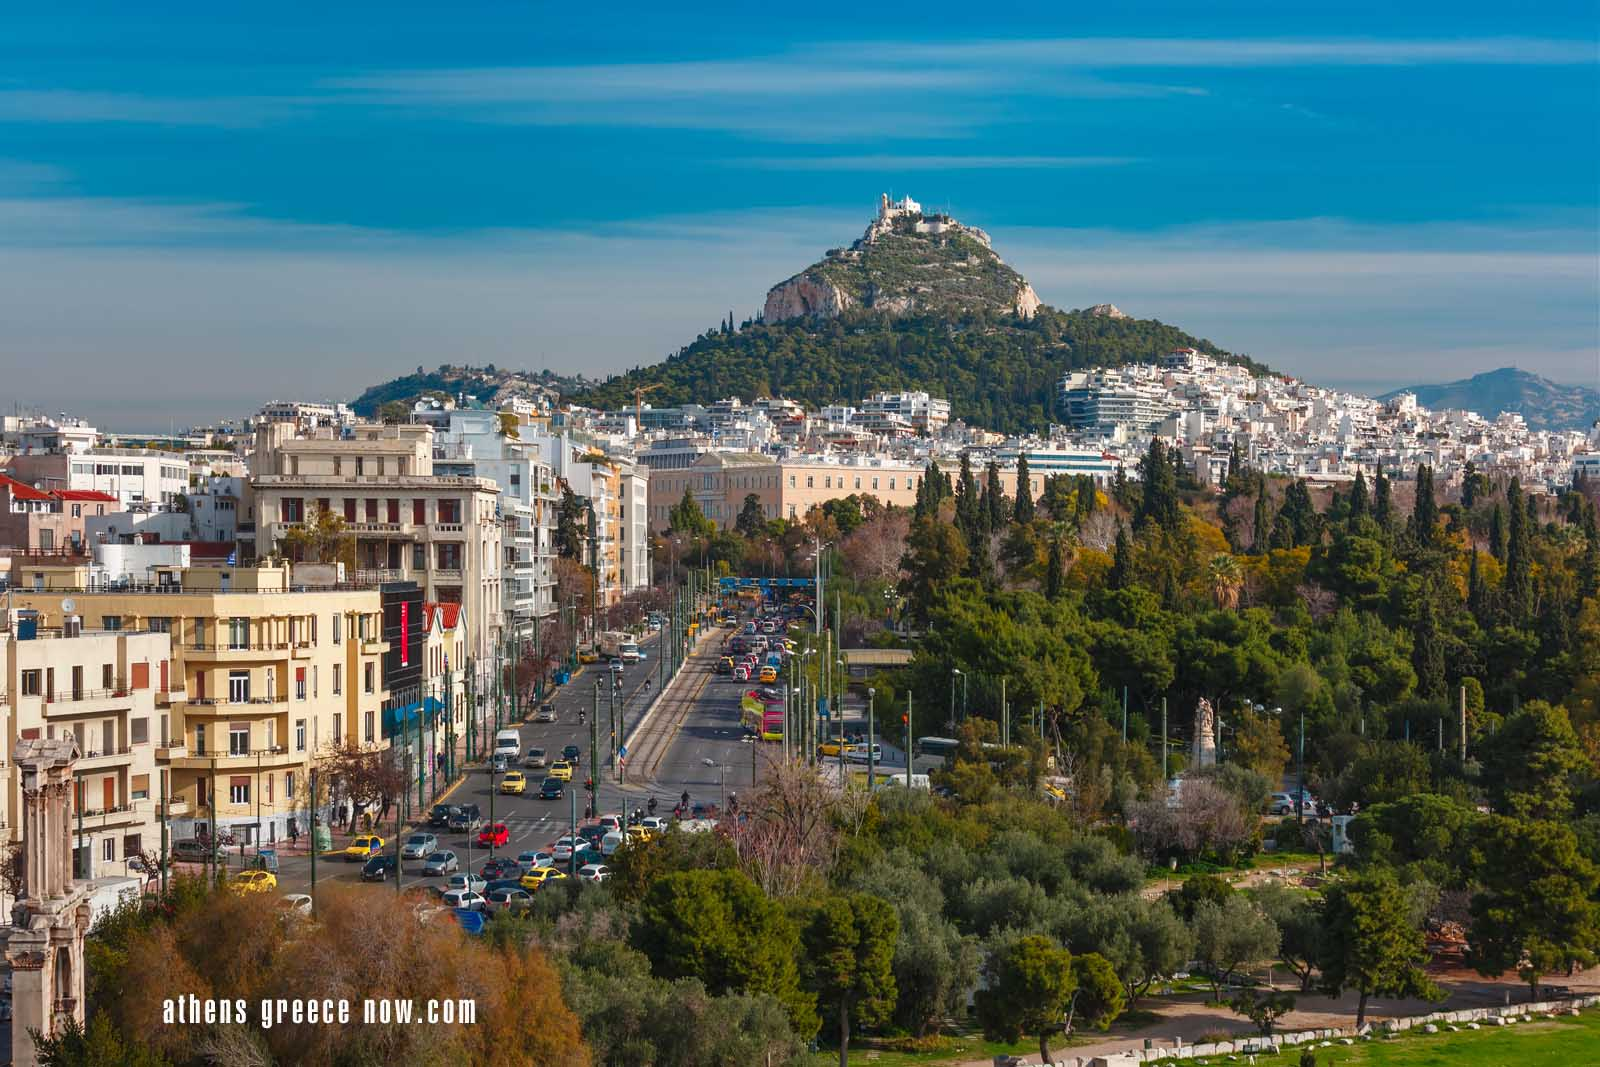 Enlarged - Lycabettus Mount in Athens Greece